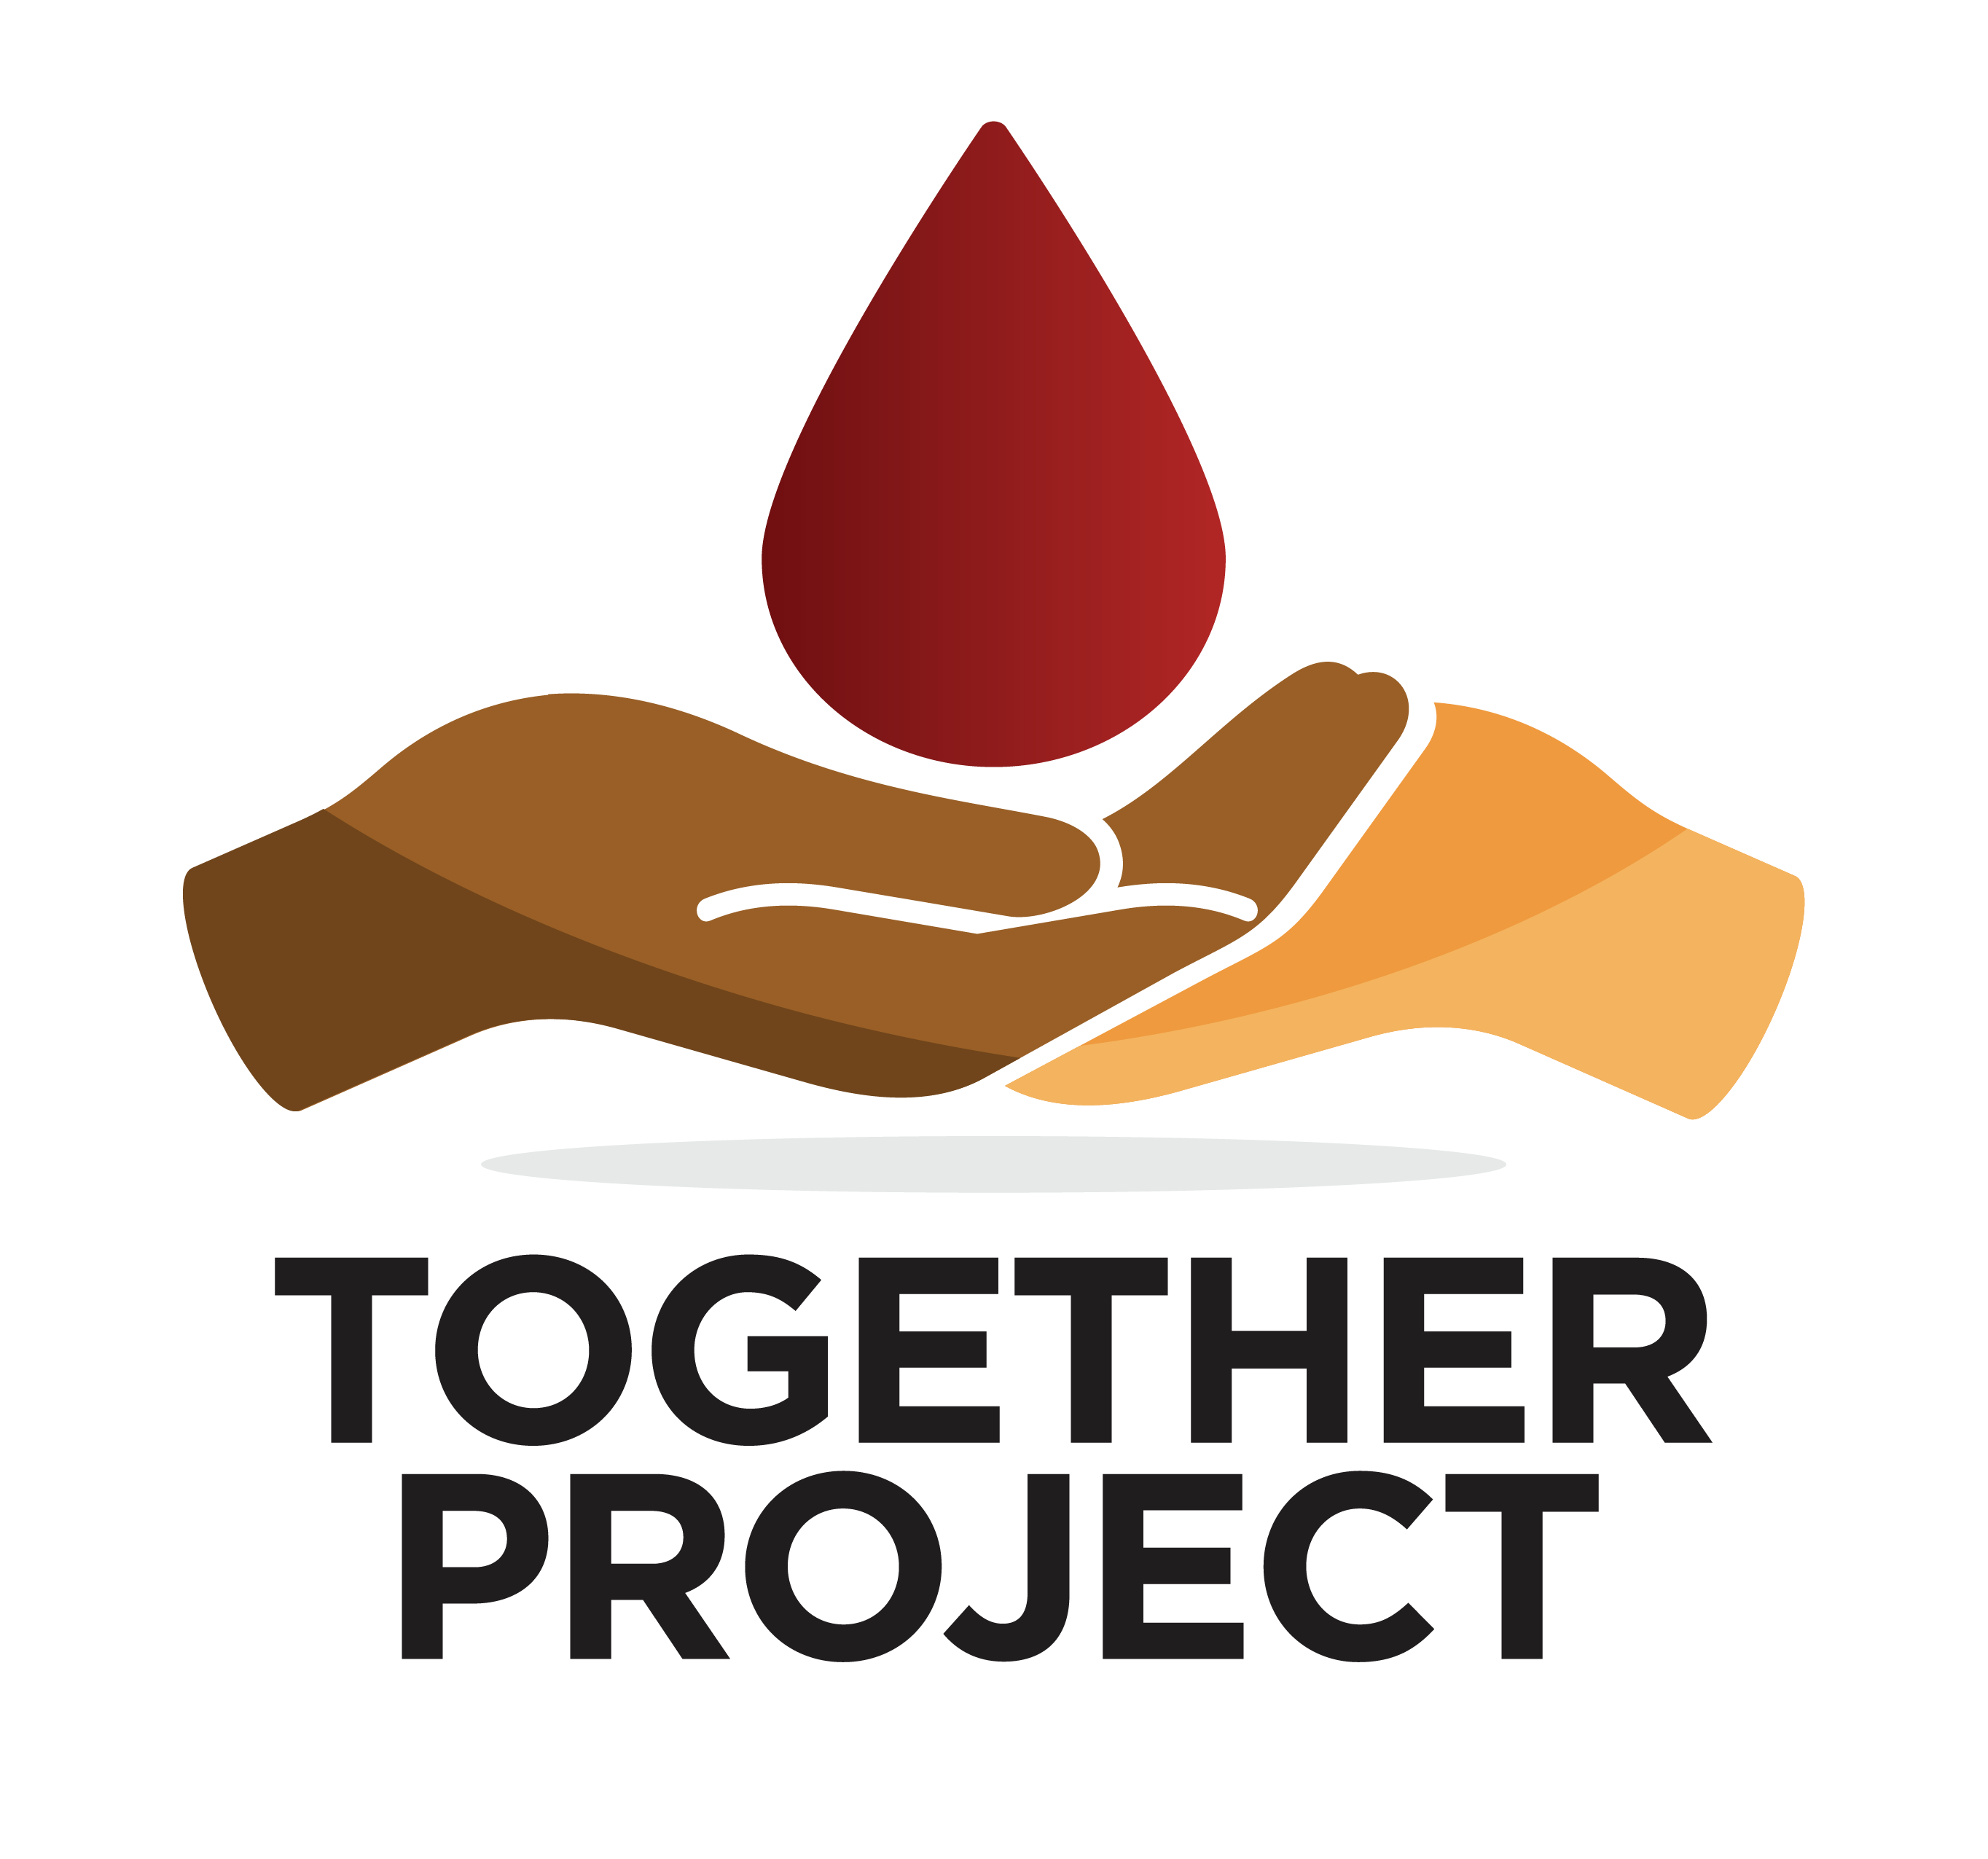 Together Project hemophilia   Hemophilia News Today   project poster